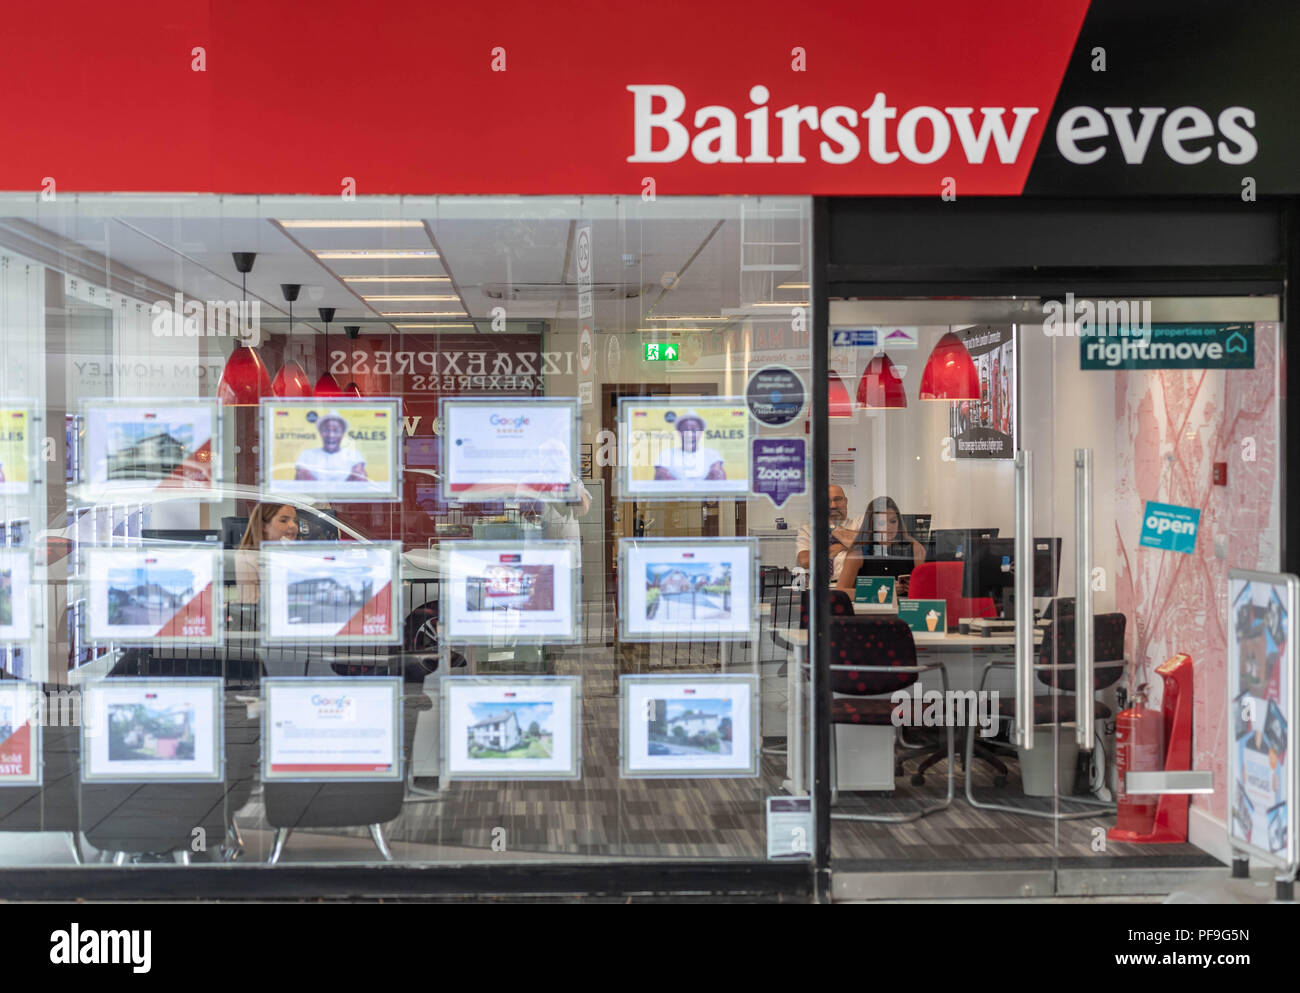 Bairstow Eves (part of the Countrywide plc Group) Estate agents shop signage in Brentwood Essex Stock Photo